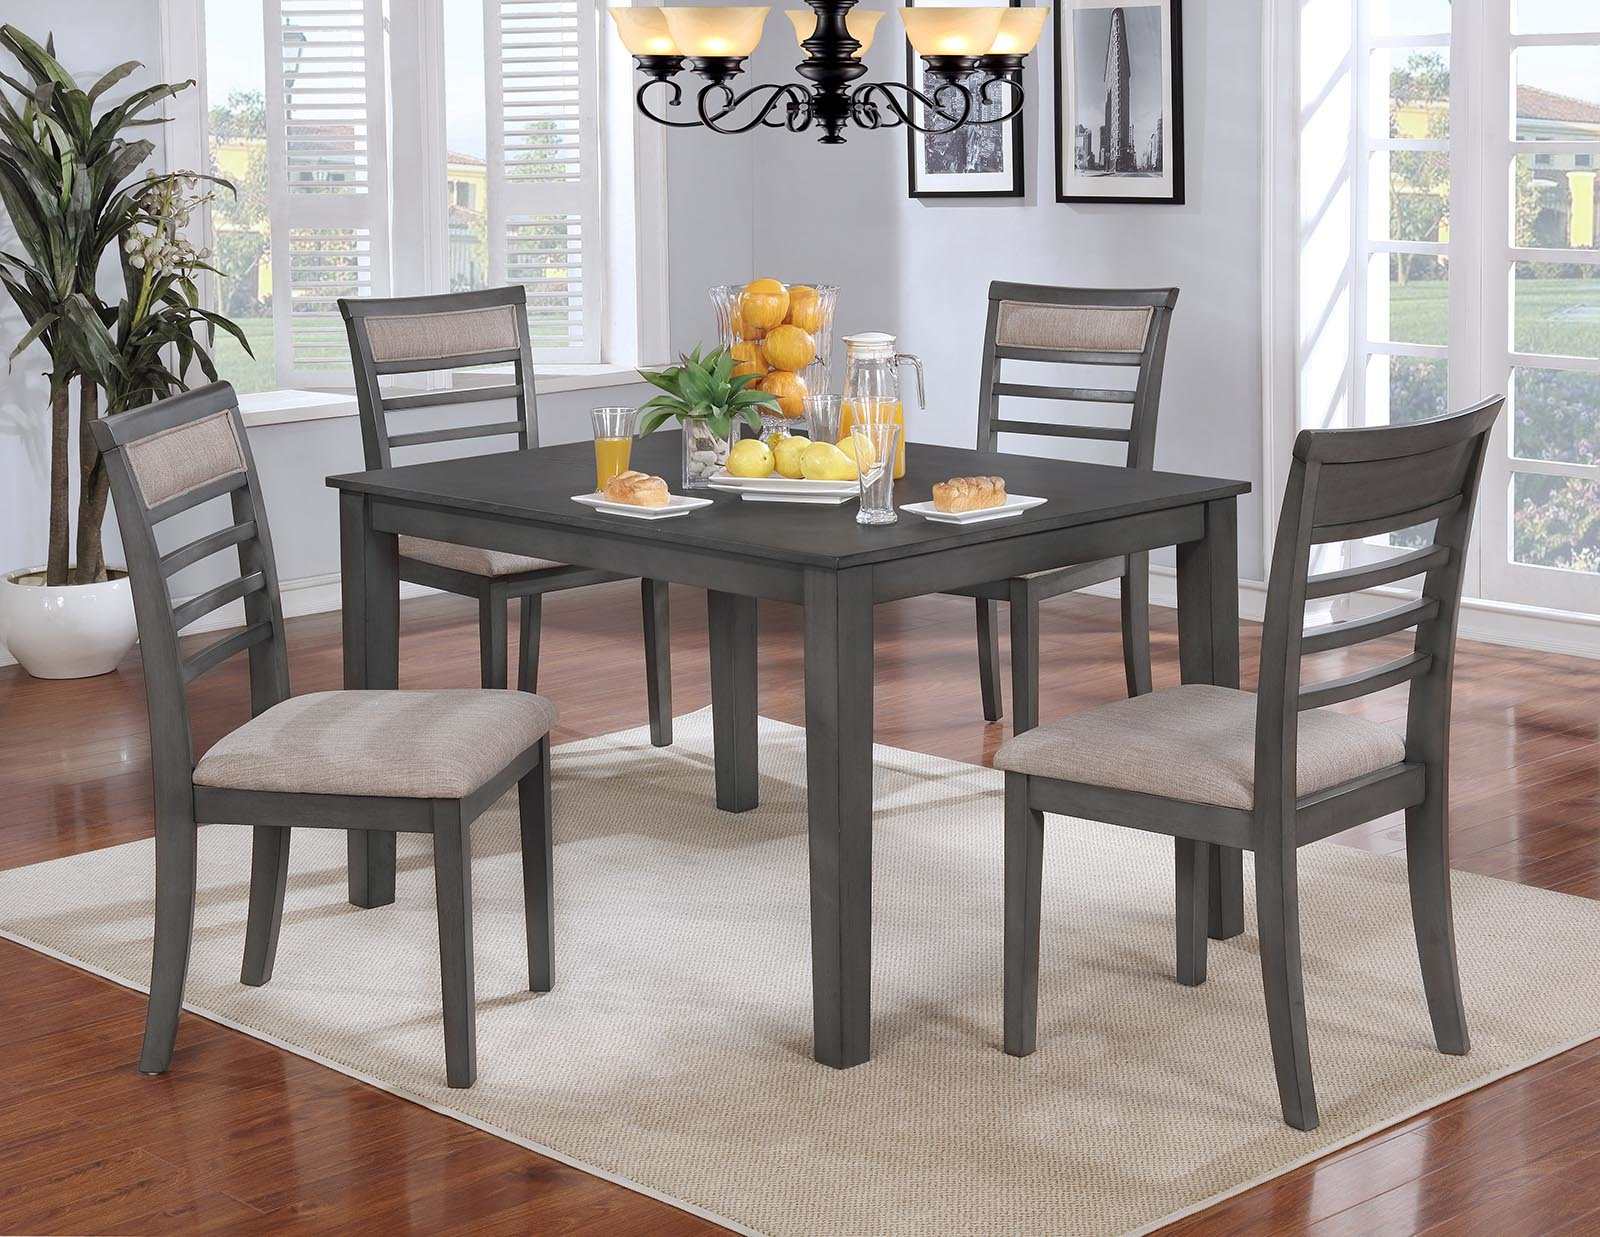 Red Barrel Studio Romel 5 Piece Dining Set Within Most Recent Baxton Studio Keitaro 5 Piece Dining Sets (Photo 3 of 20)